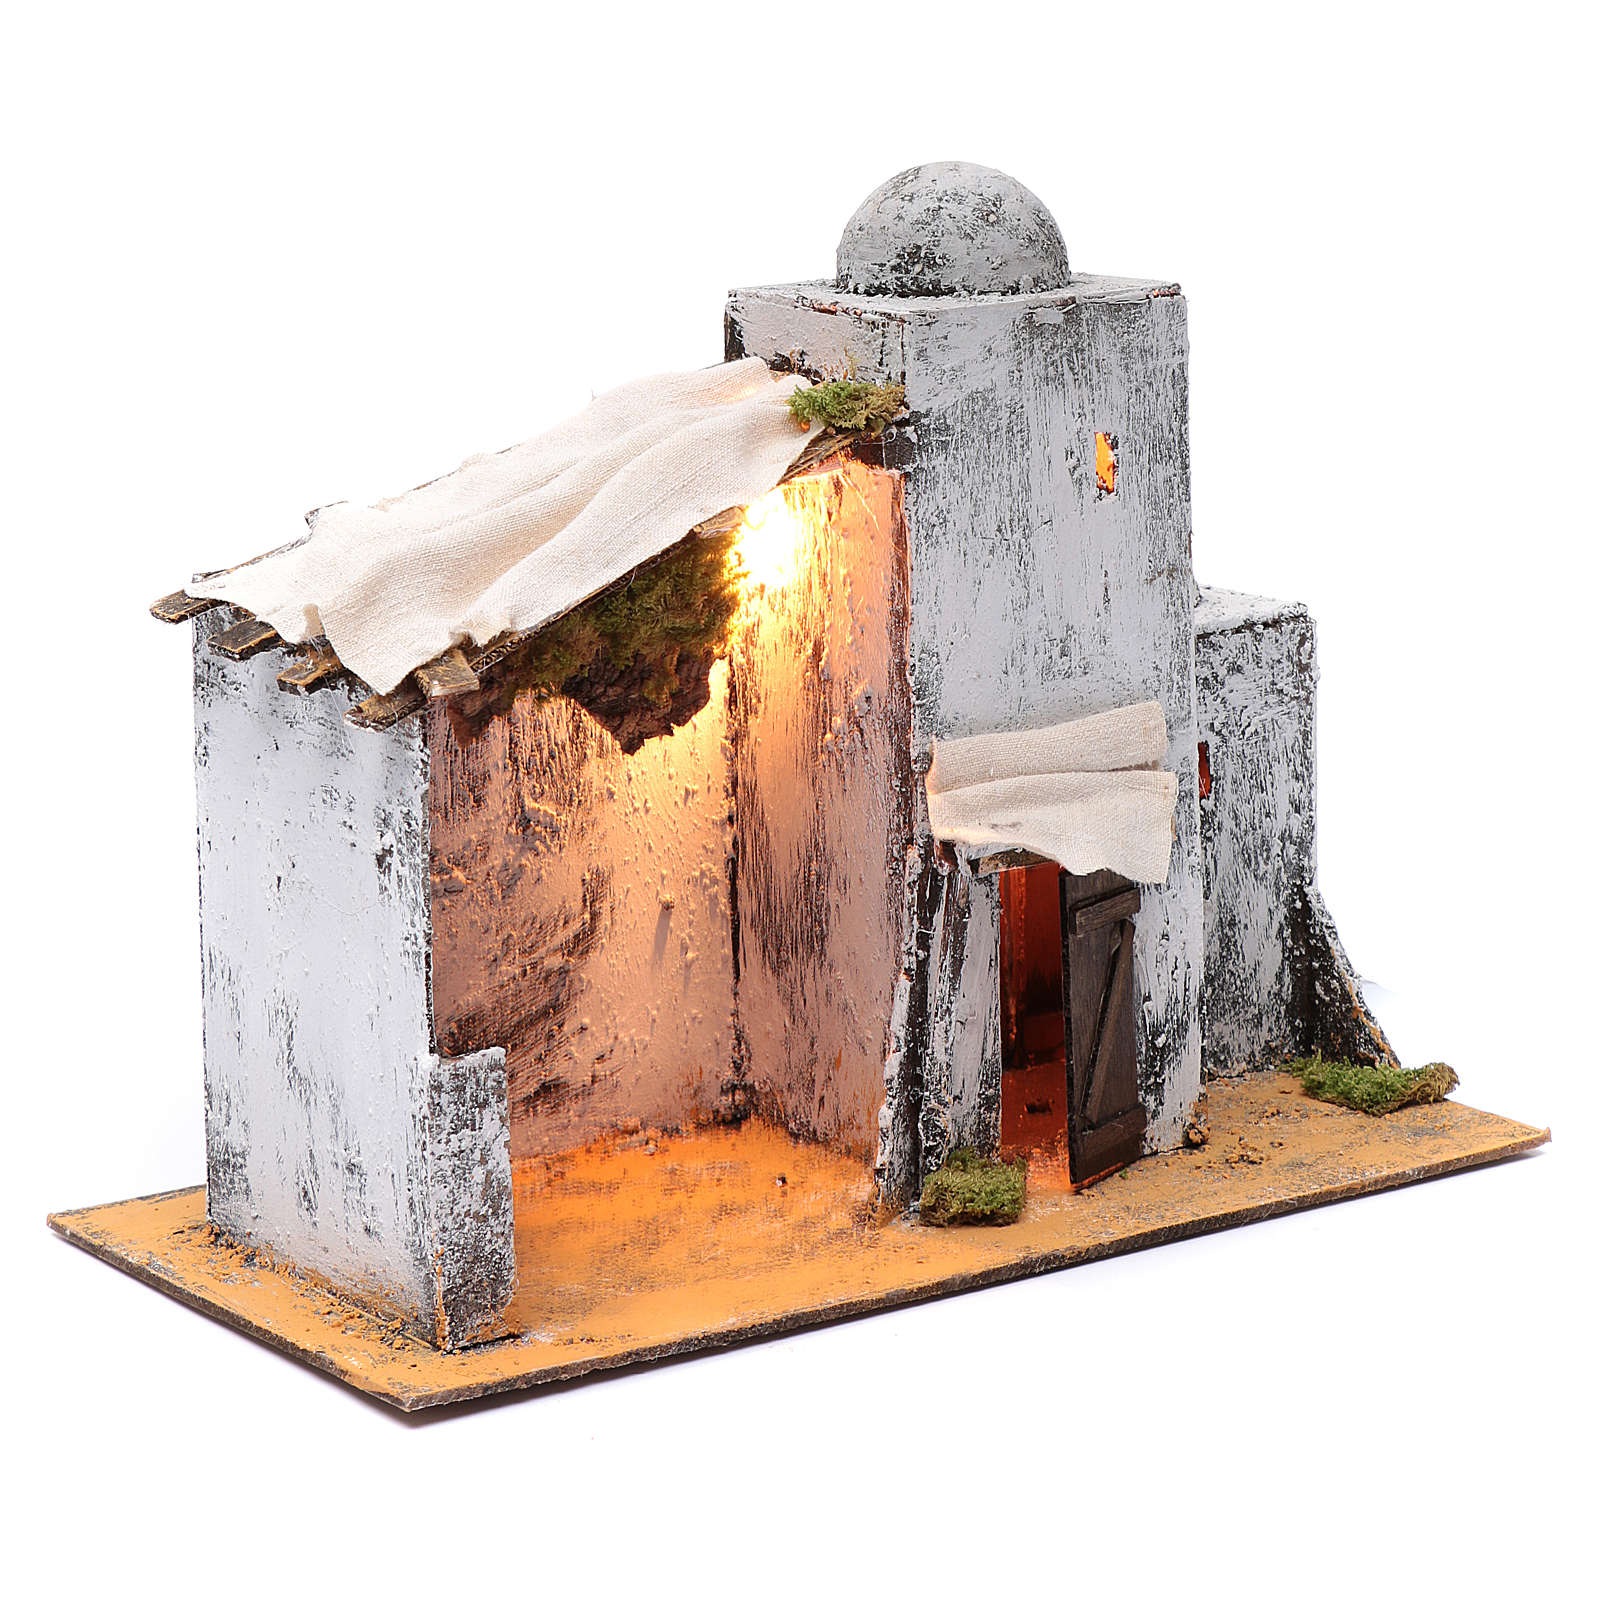 Neapolitan nativity scene setting Arabian hut 30x35x20 cm 4